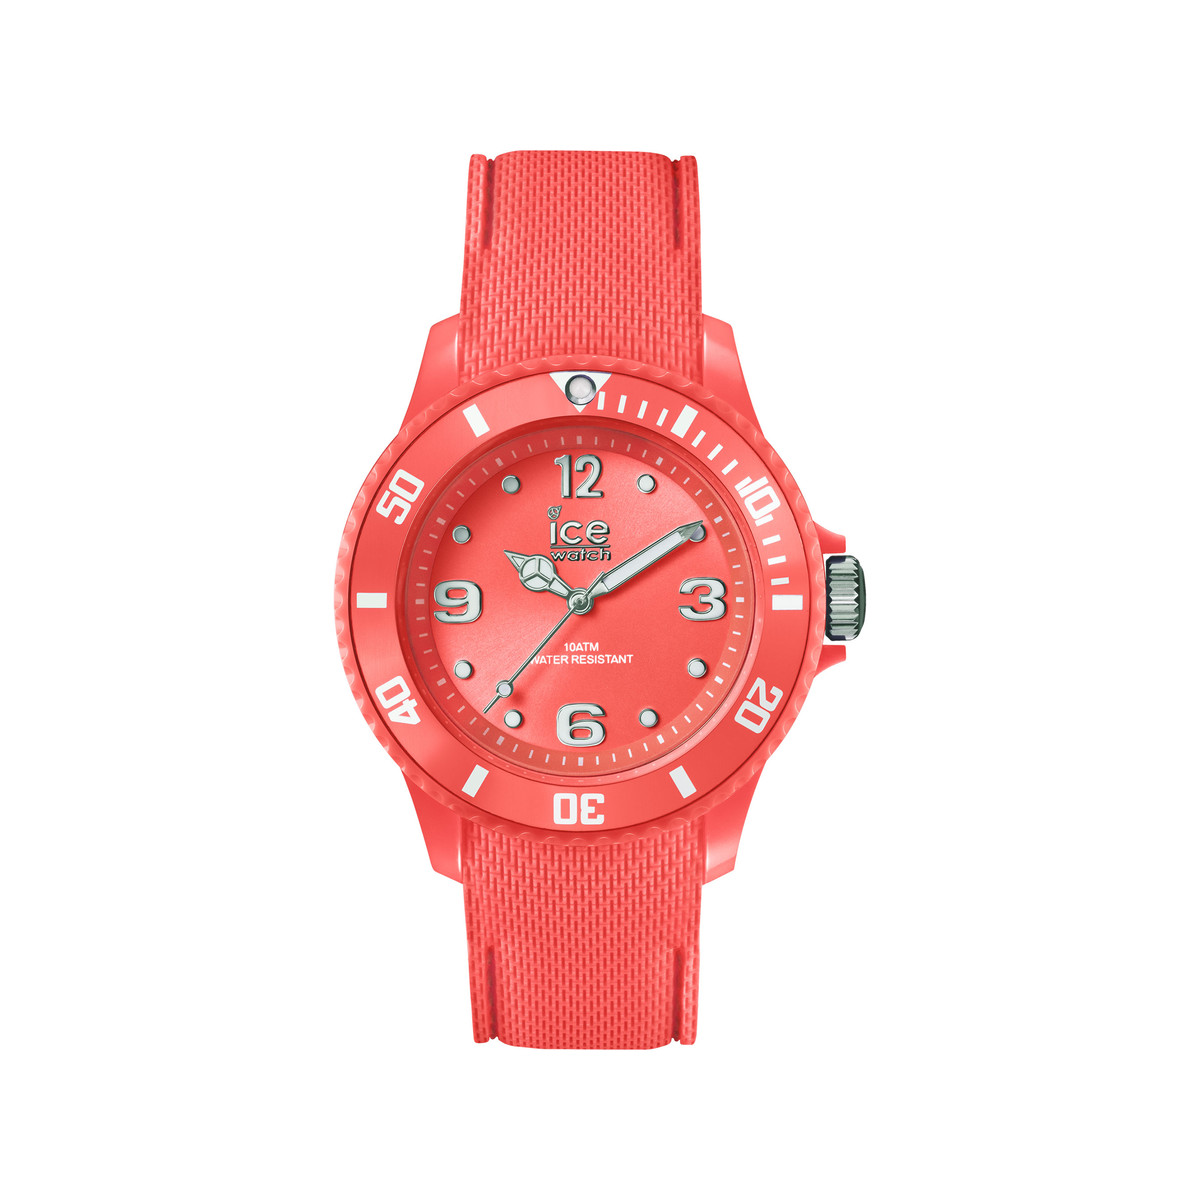 Montre Ice Watch femme silicone rouge - vue 1